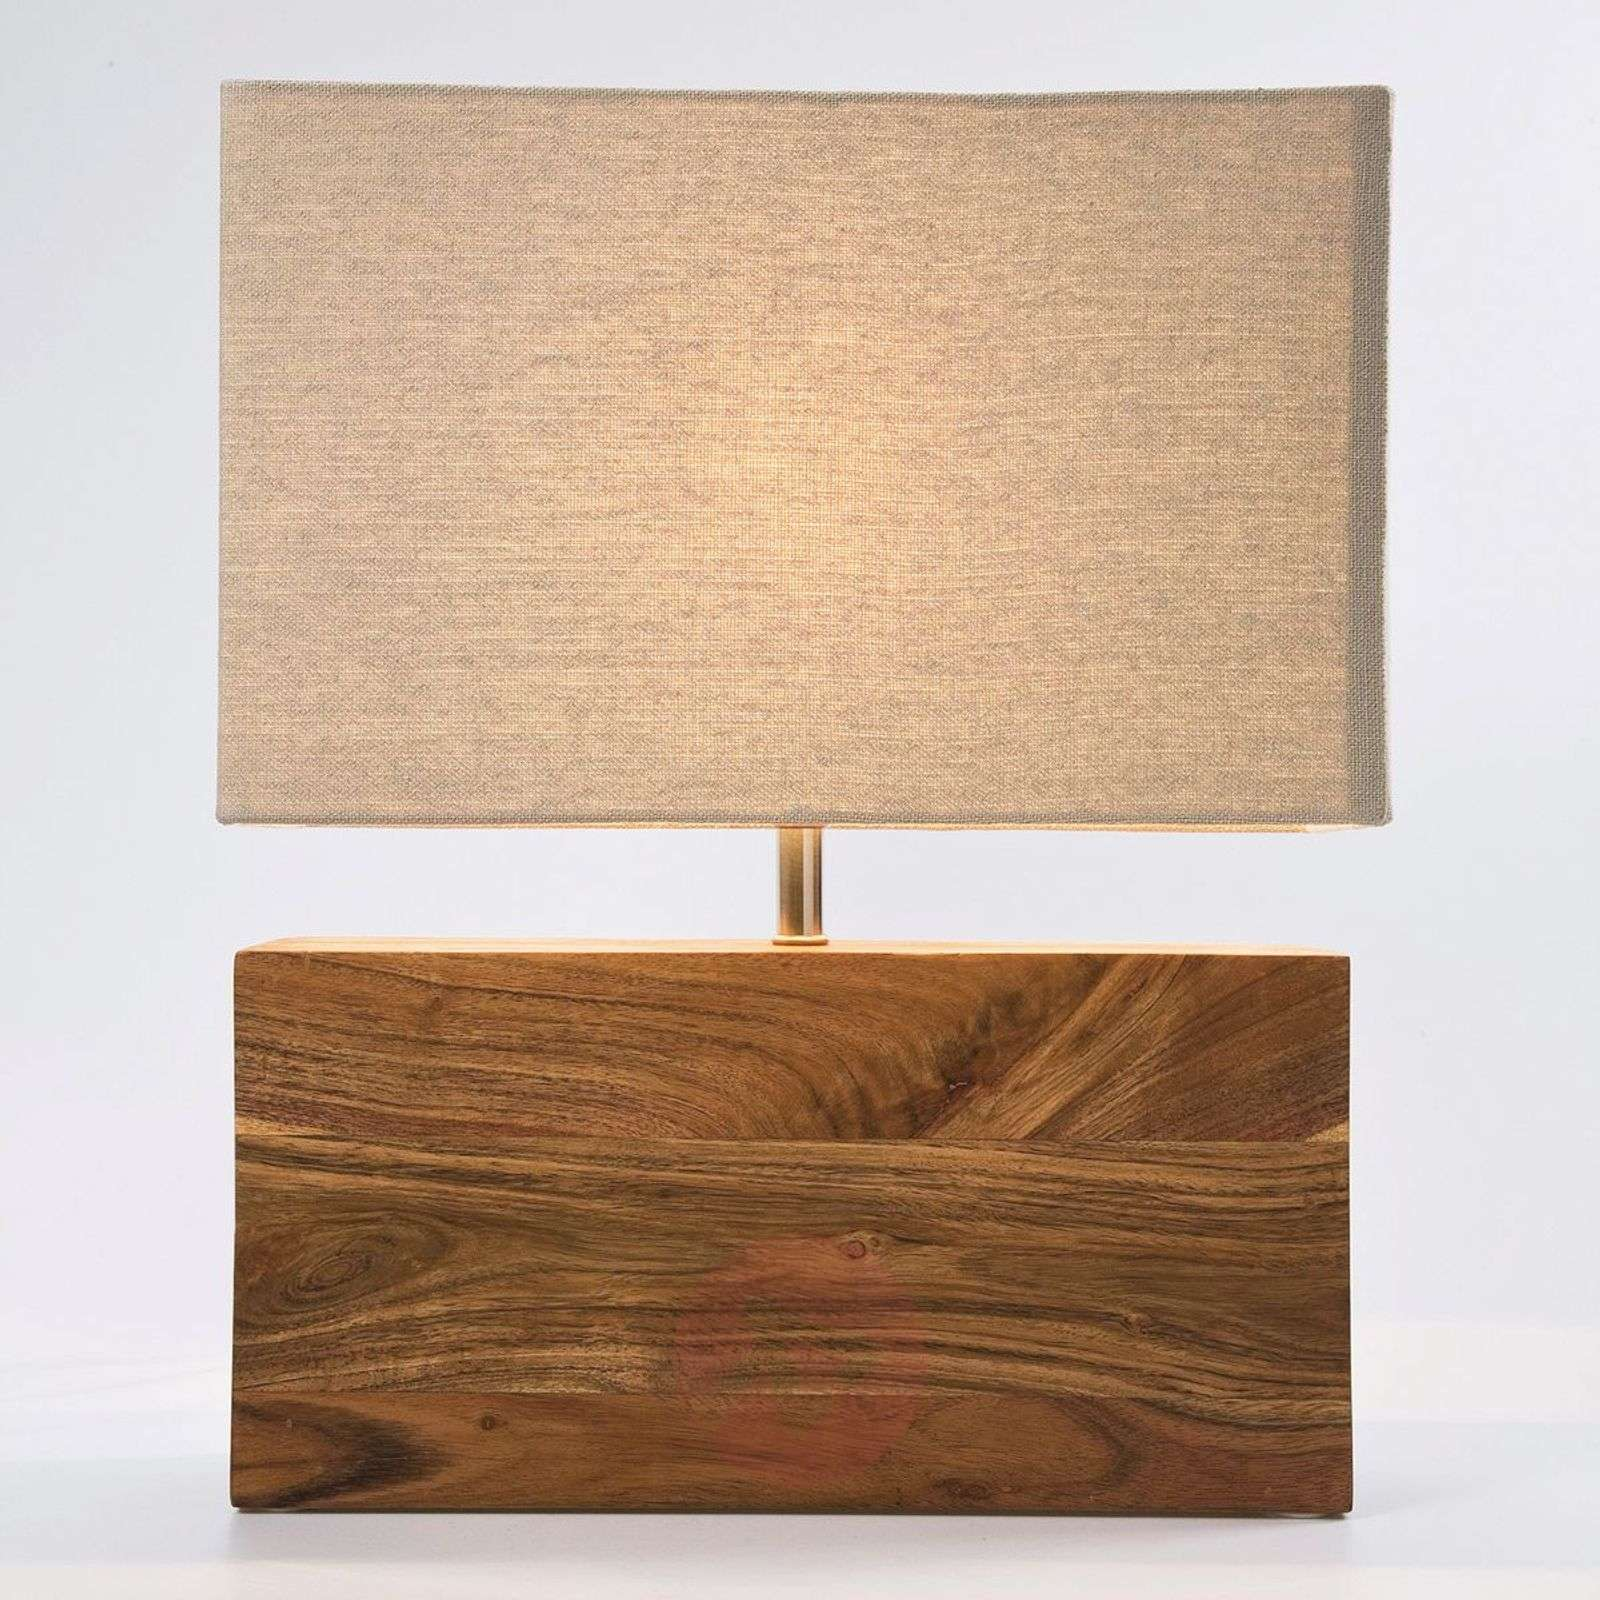 Table lamp RECTANGULAR WOOD with wooden base-5517187-01